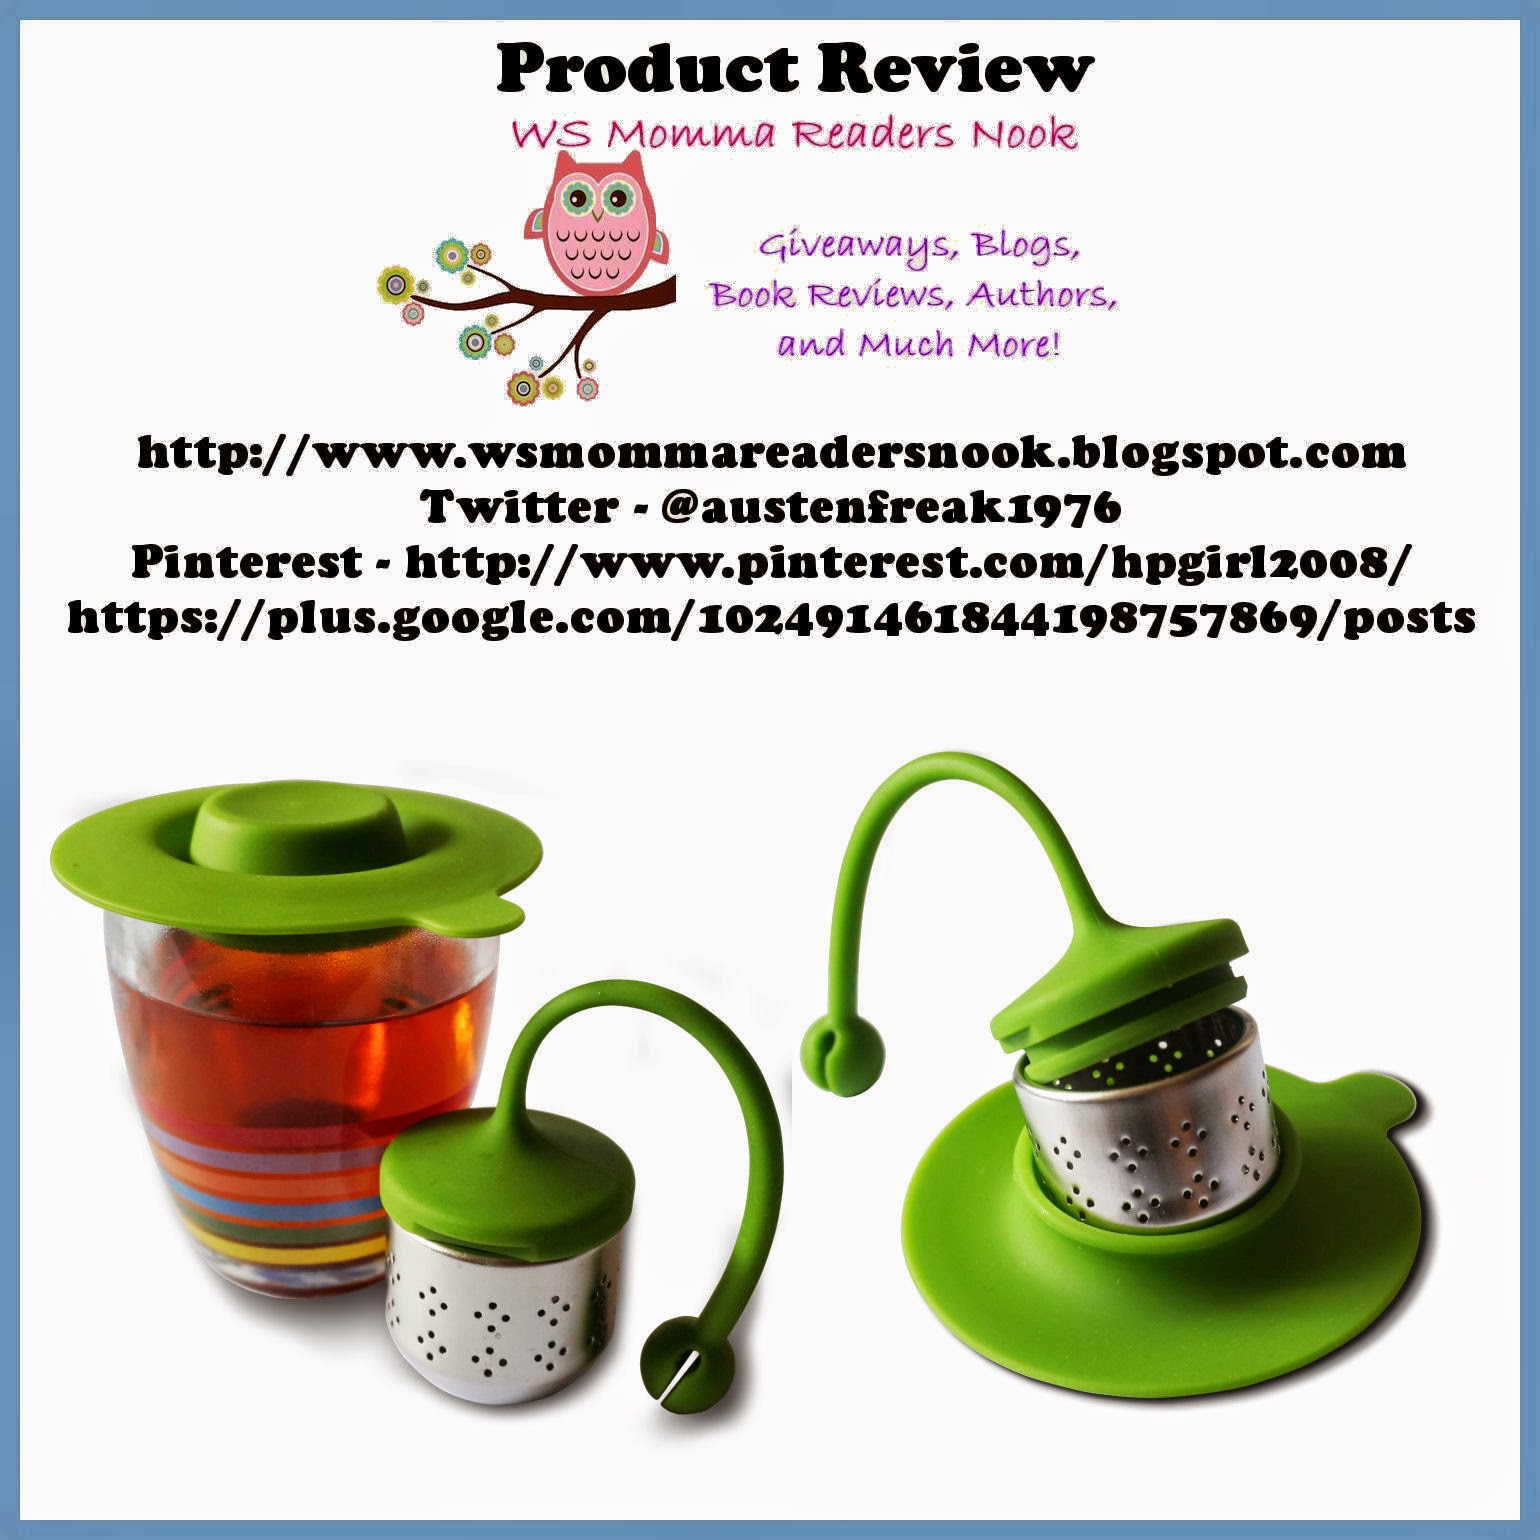 http://www.amazon.com/Tea-Infuser-Drinkkler-Exclusive-Design/dp/B00M3CEFBS/ref=sr_1_2100?ie=UTF8&qid=1425872327&sr=1-2100&keywords=tea+infuser